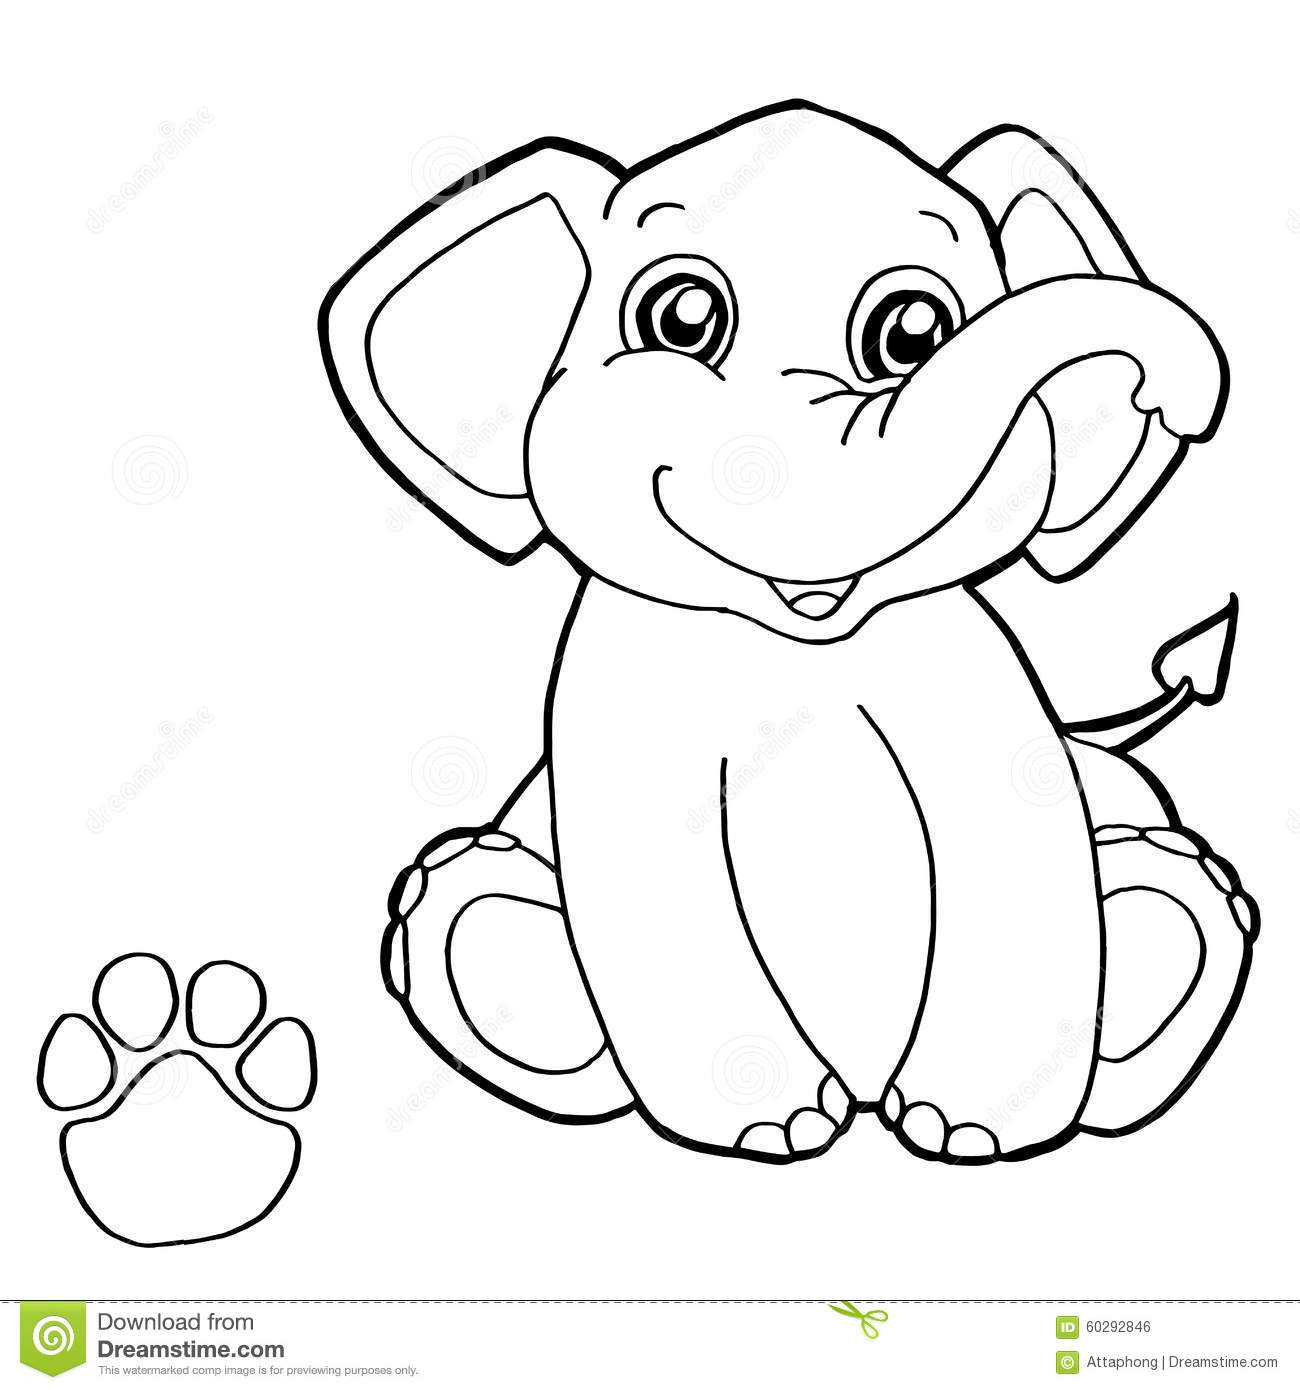 Coloring Elephant Image Page Paw Print